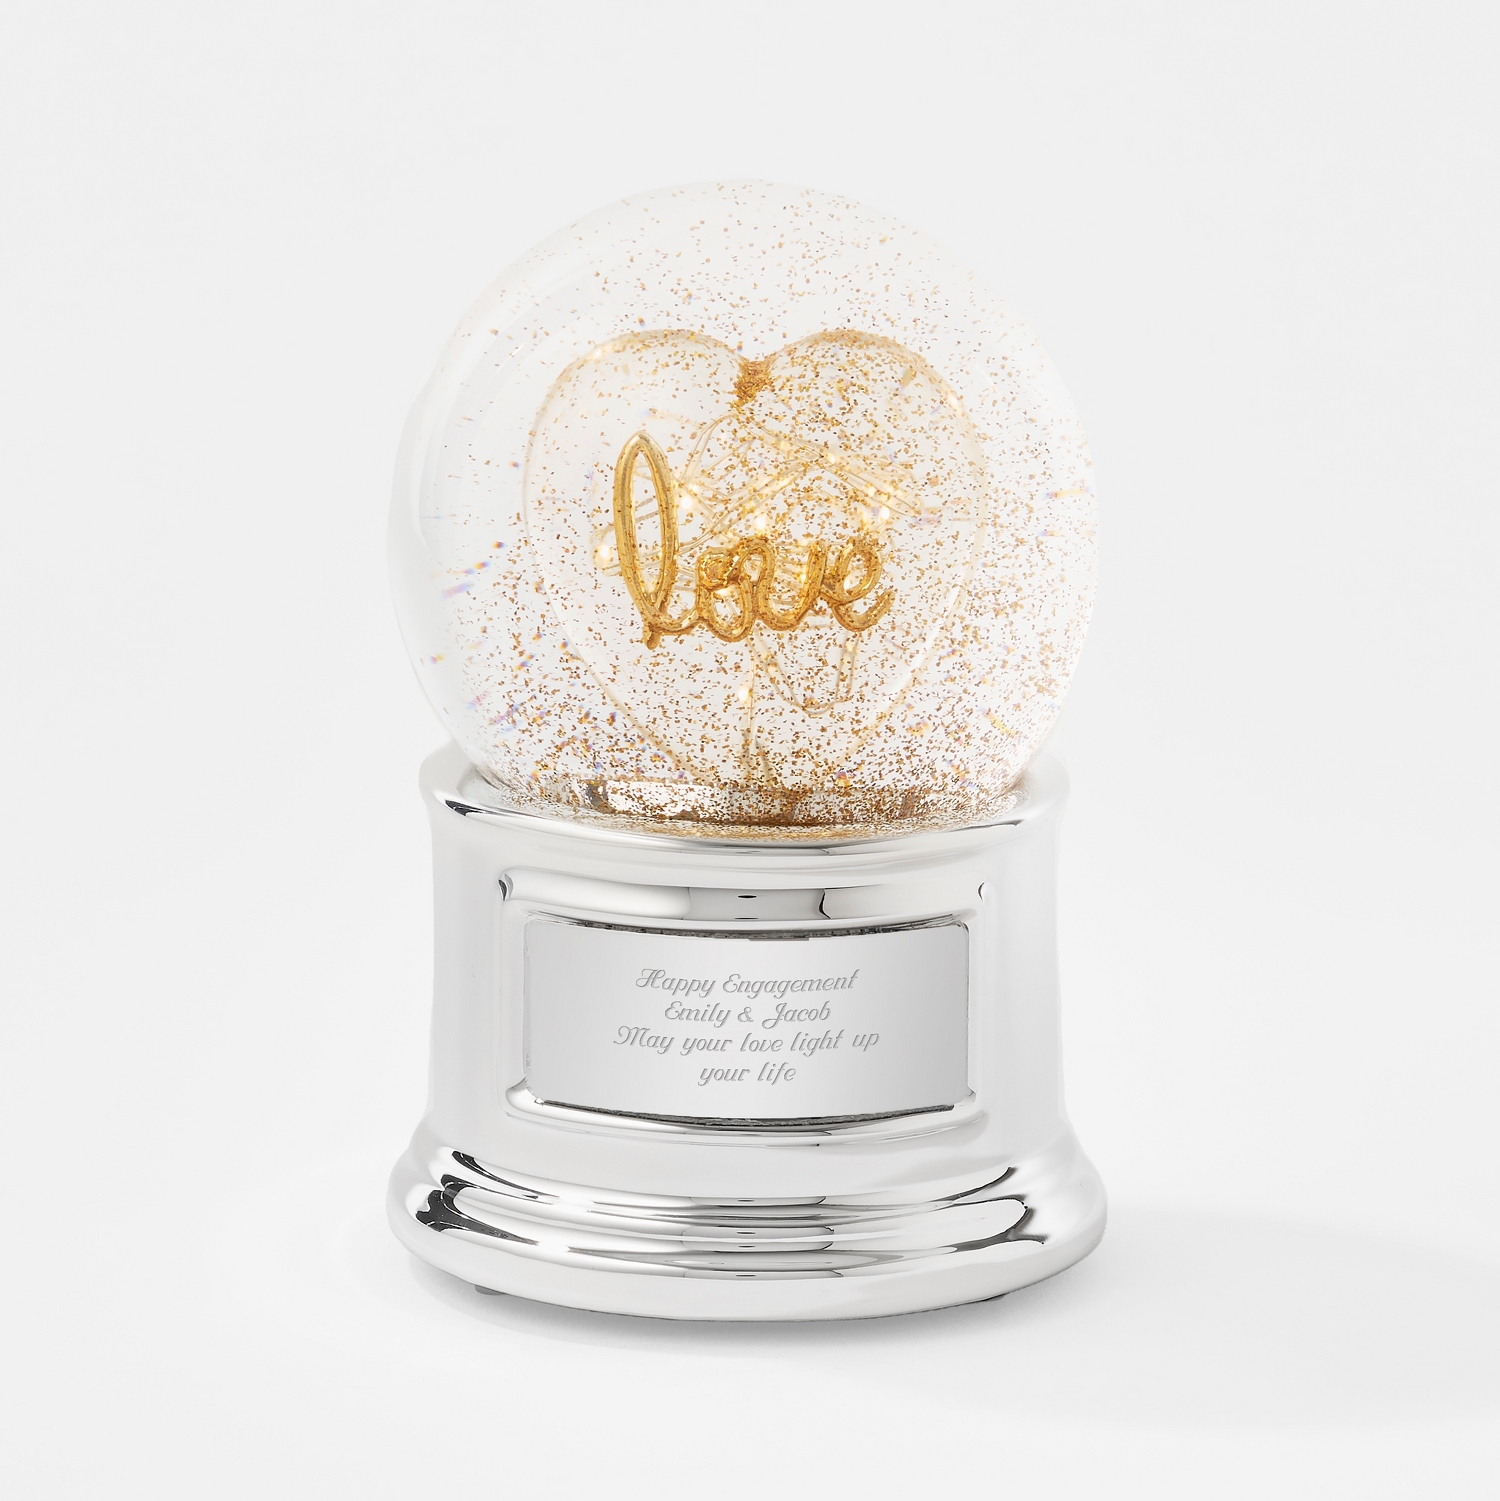 Personalized Snow Globes At Things Remembered